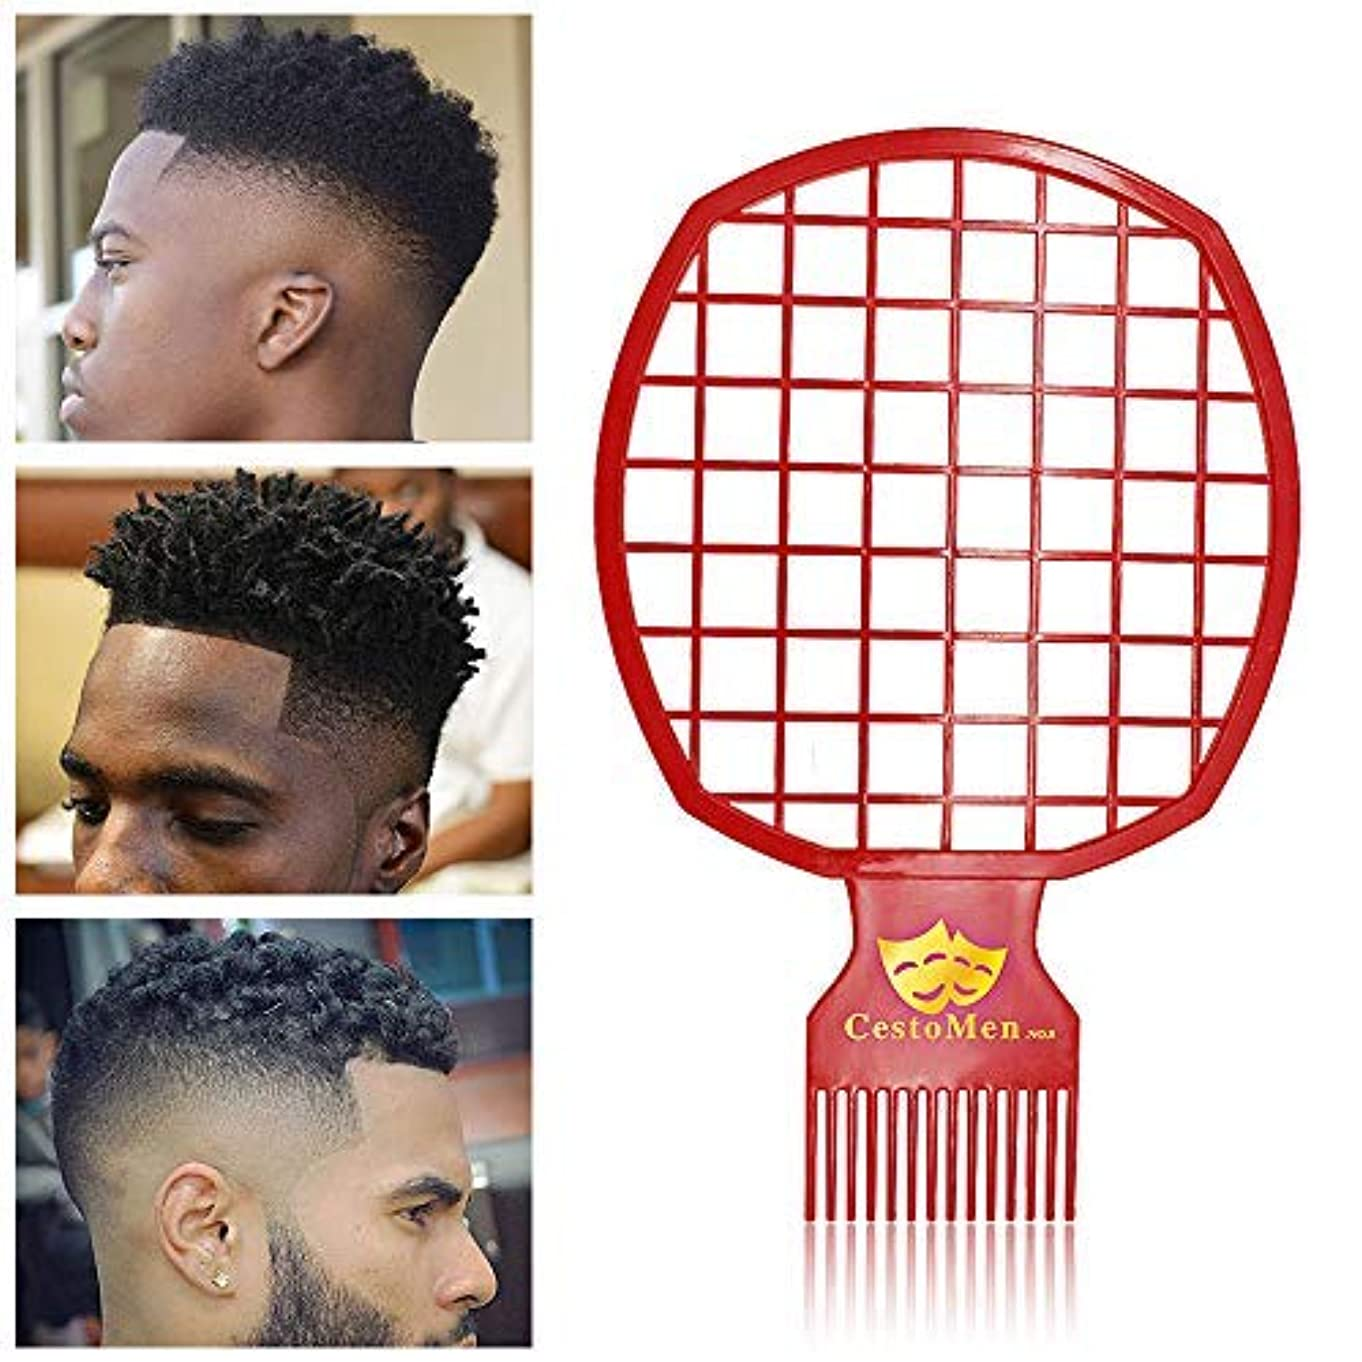 事可決端Afro & Twist Comb for Natural Hair & Dreads, Curl Hair and Weave Dreadlocks, Afro Hair Coil Pick Combs for Men, Barber and Personal Use, Super Easy to Clean (Red) [並行輸入品]